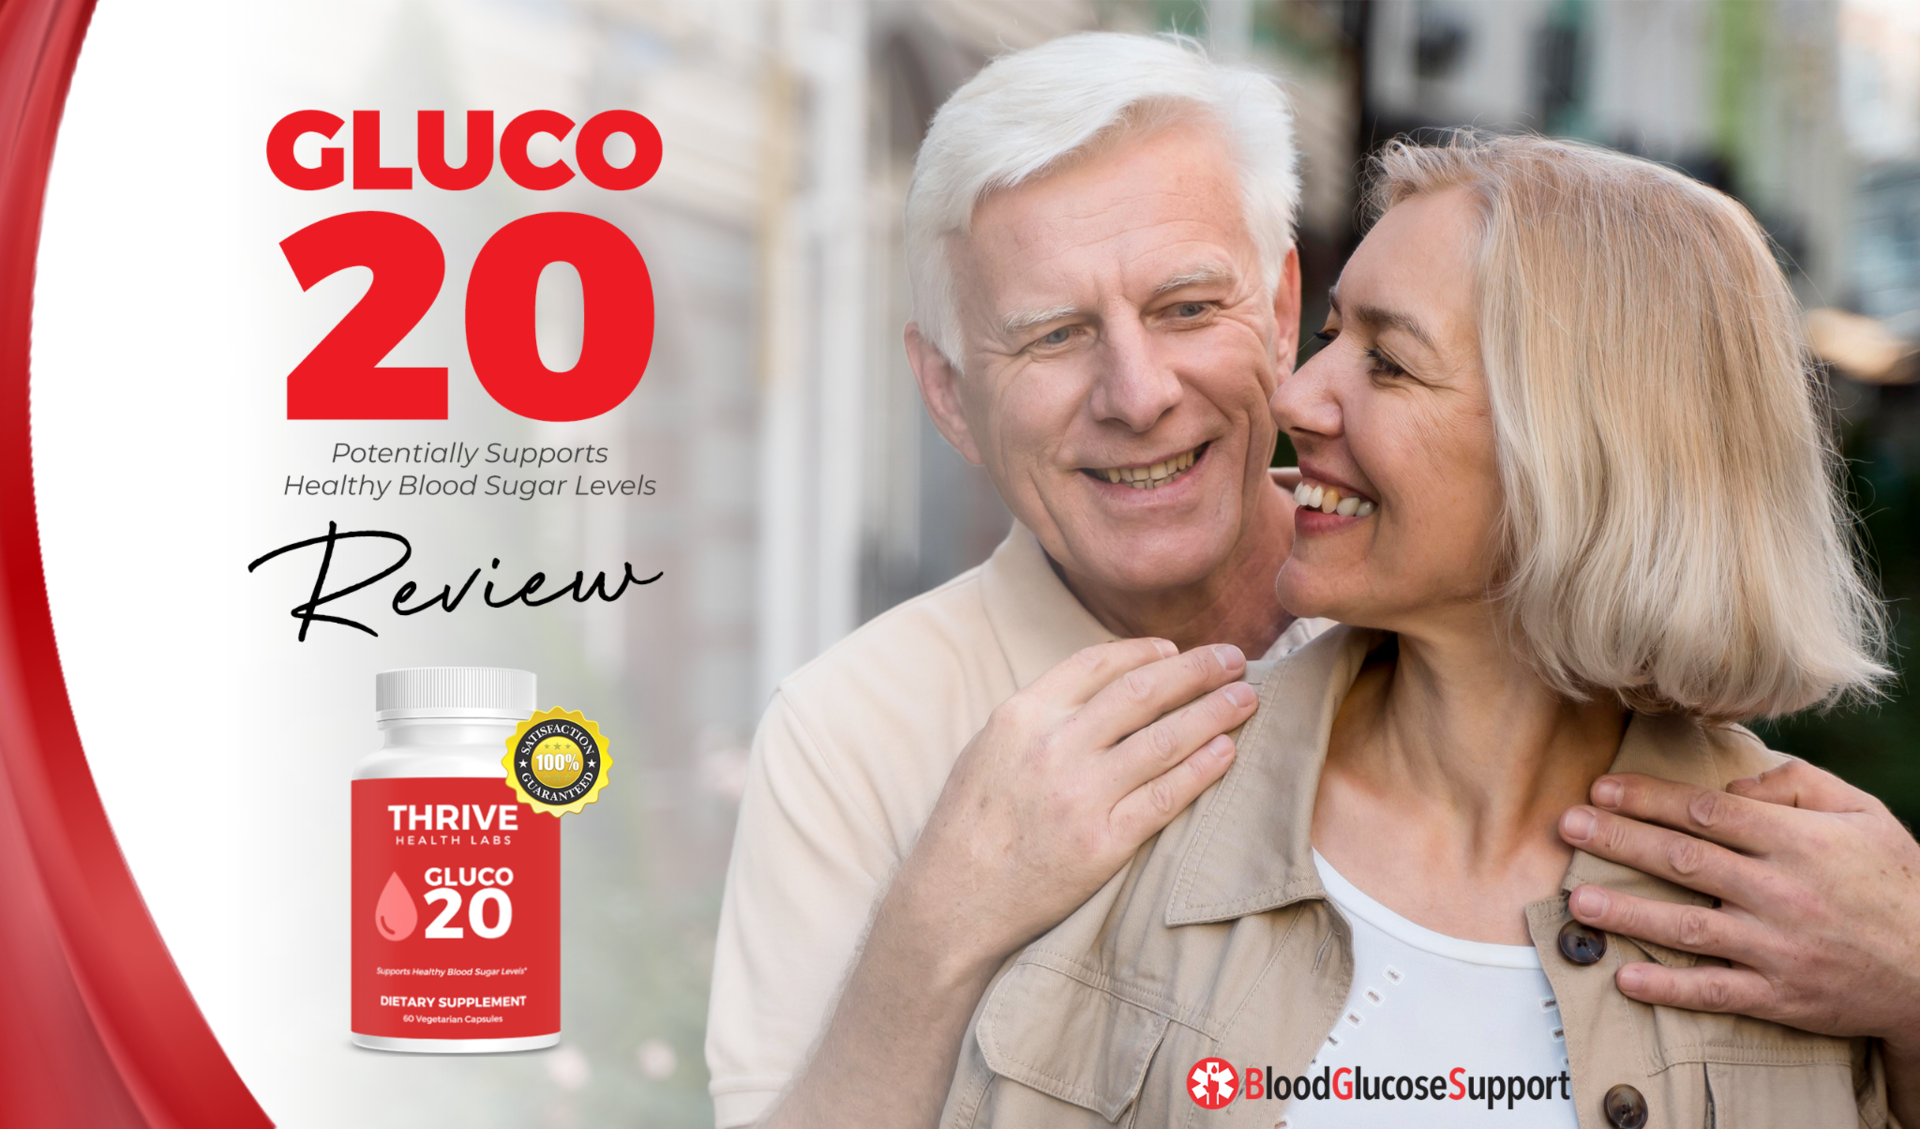 gluco20.png (1920×1129)